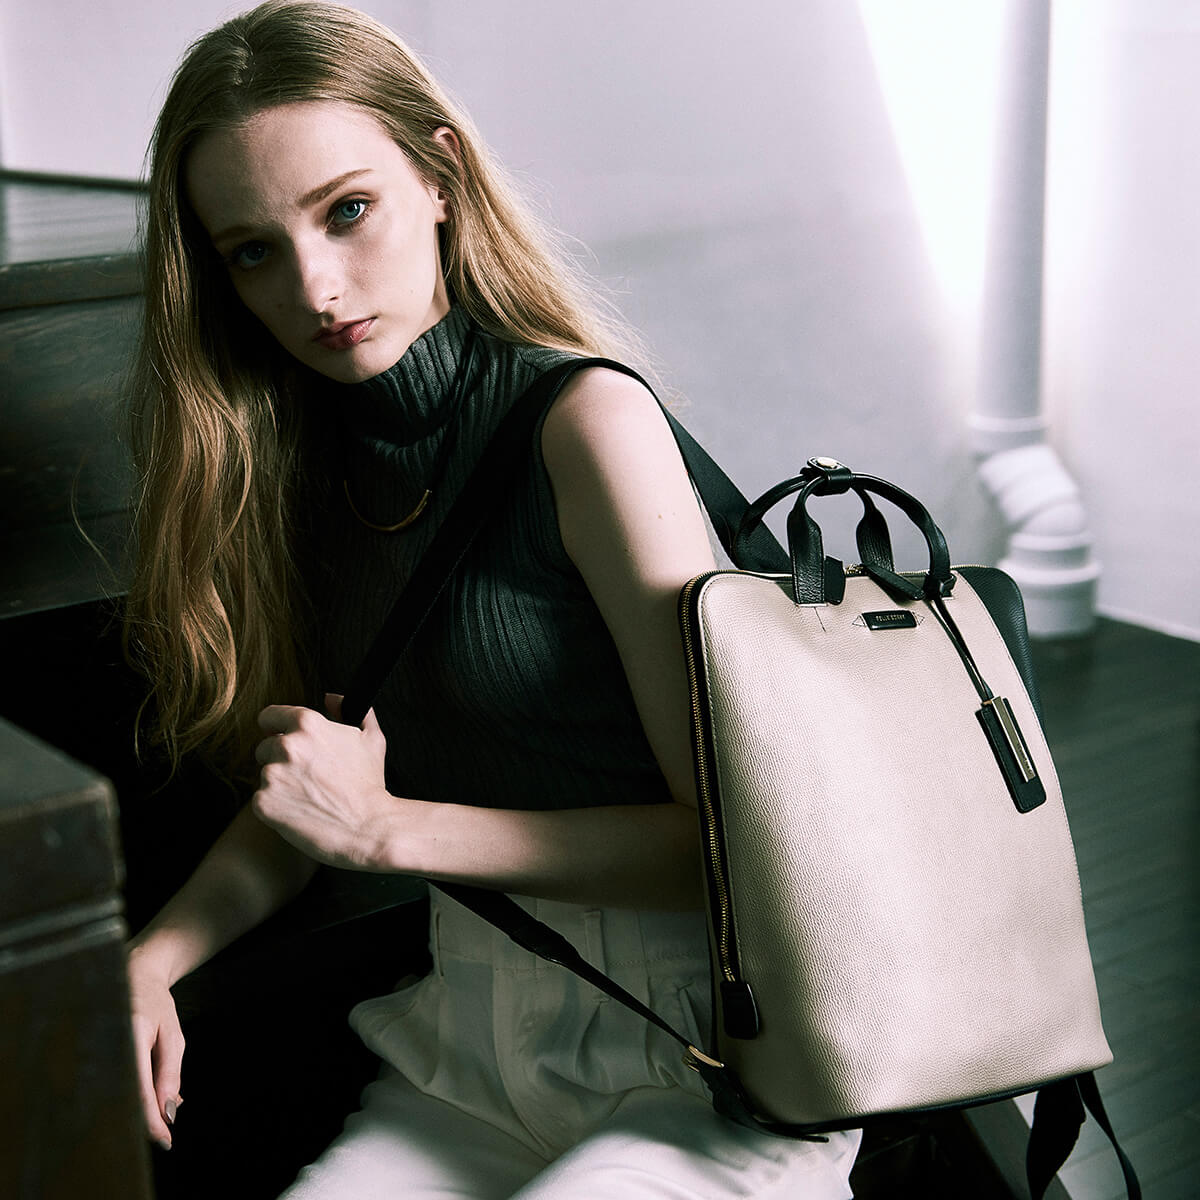 PELLE BORSA Spice up your days 2018 Autumn / Winter Collection